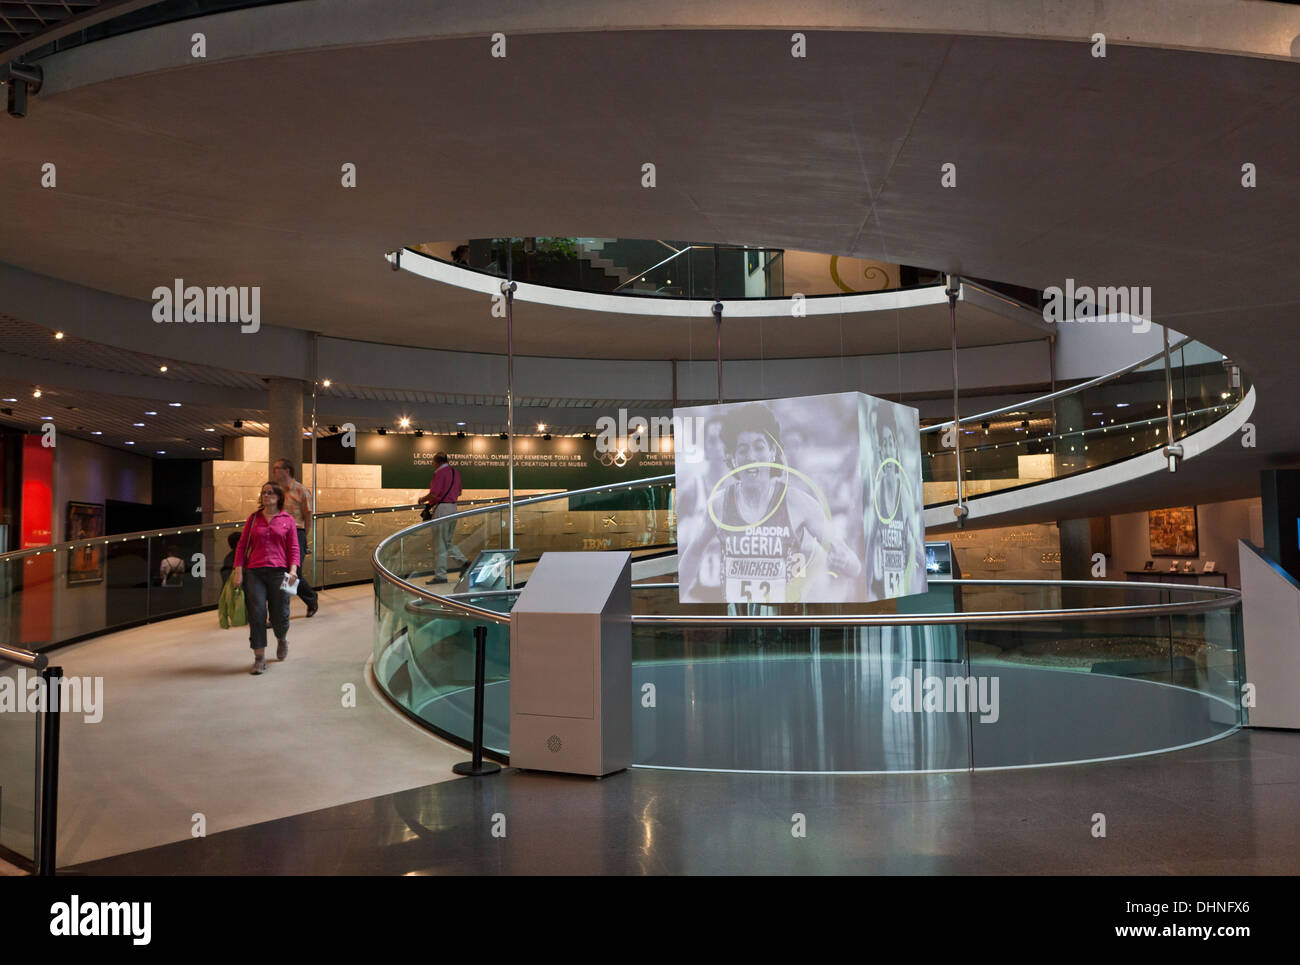 The Olympic Museum in Lausanne, Switzerland. It is one of the most popular attractions in the city. - Stock Image